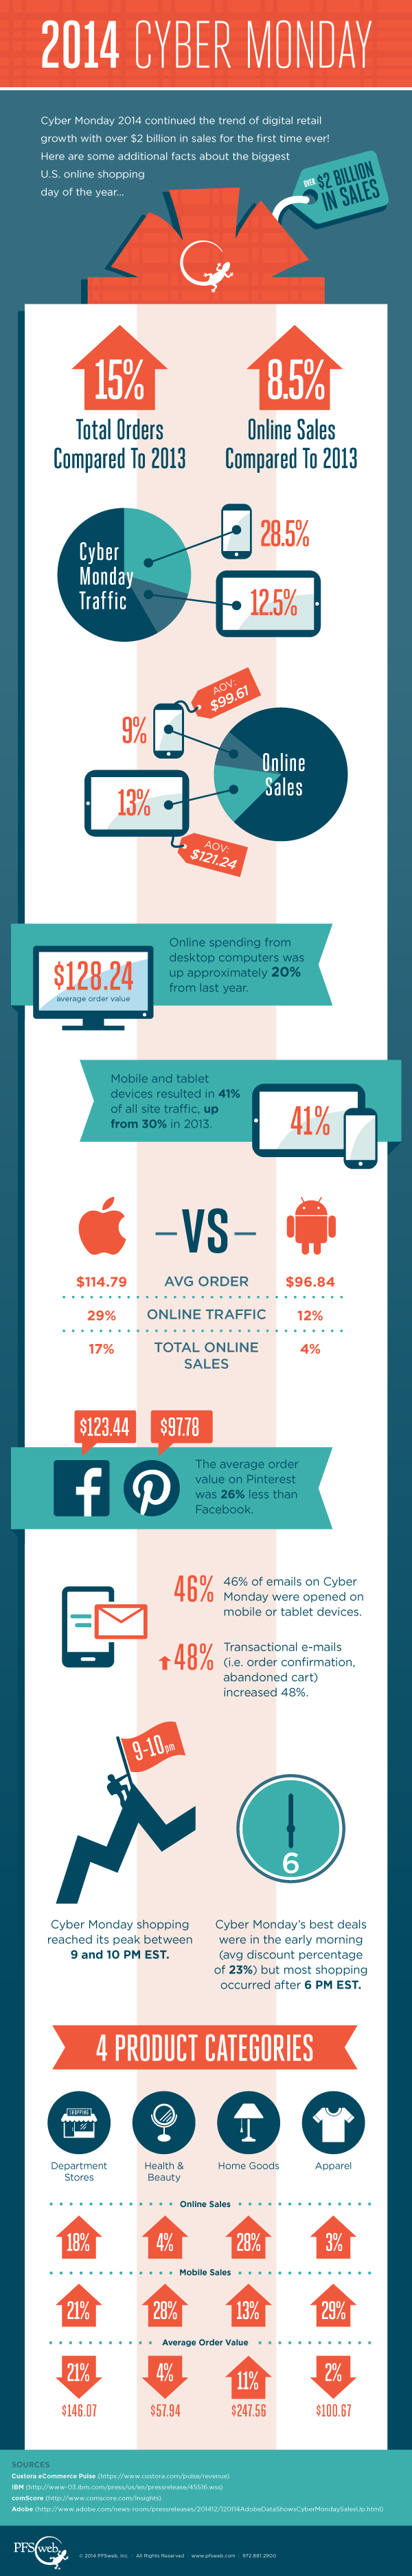 2014-Mobile Cyber Monday Infographic